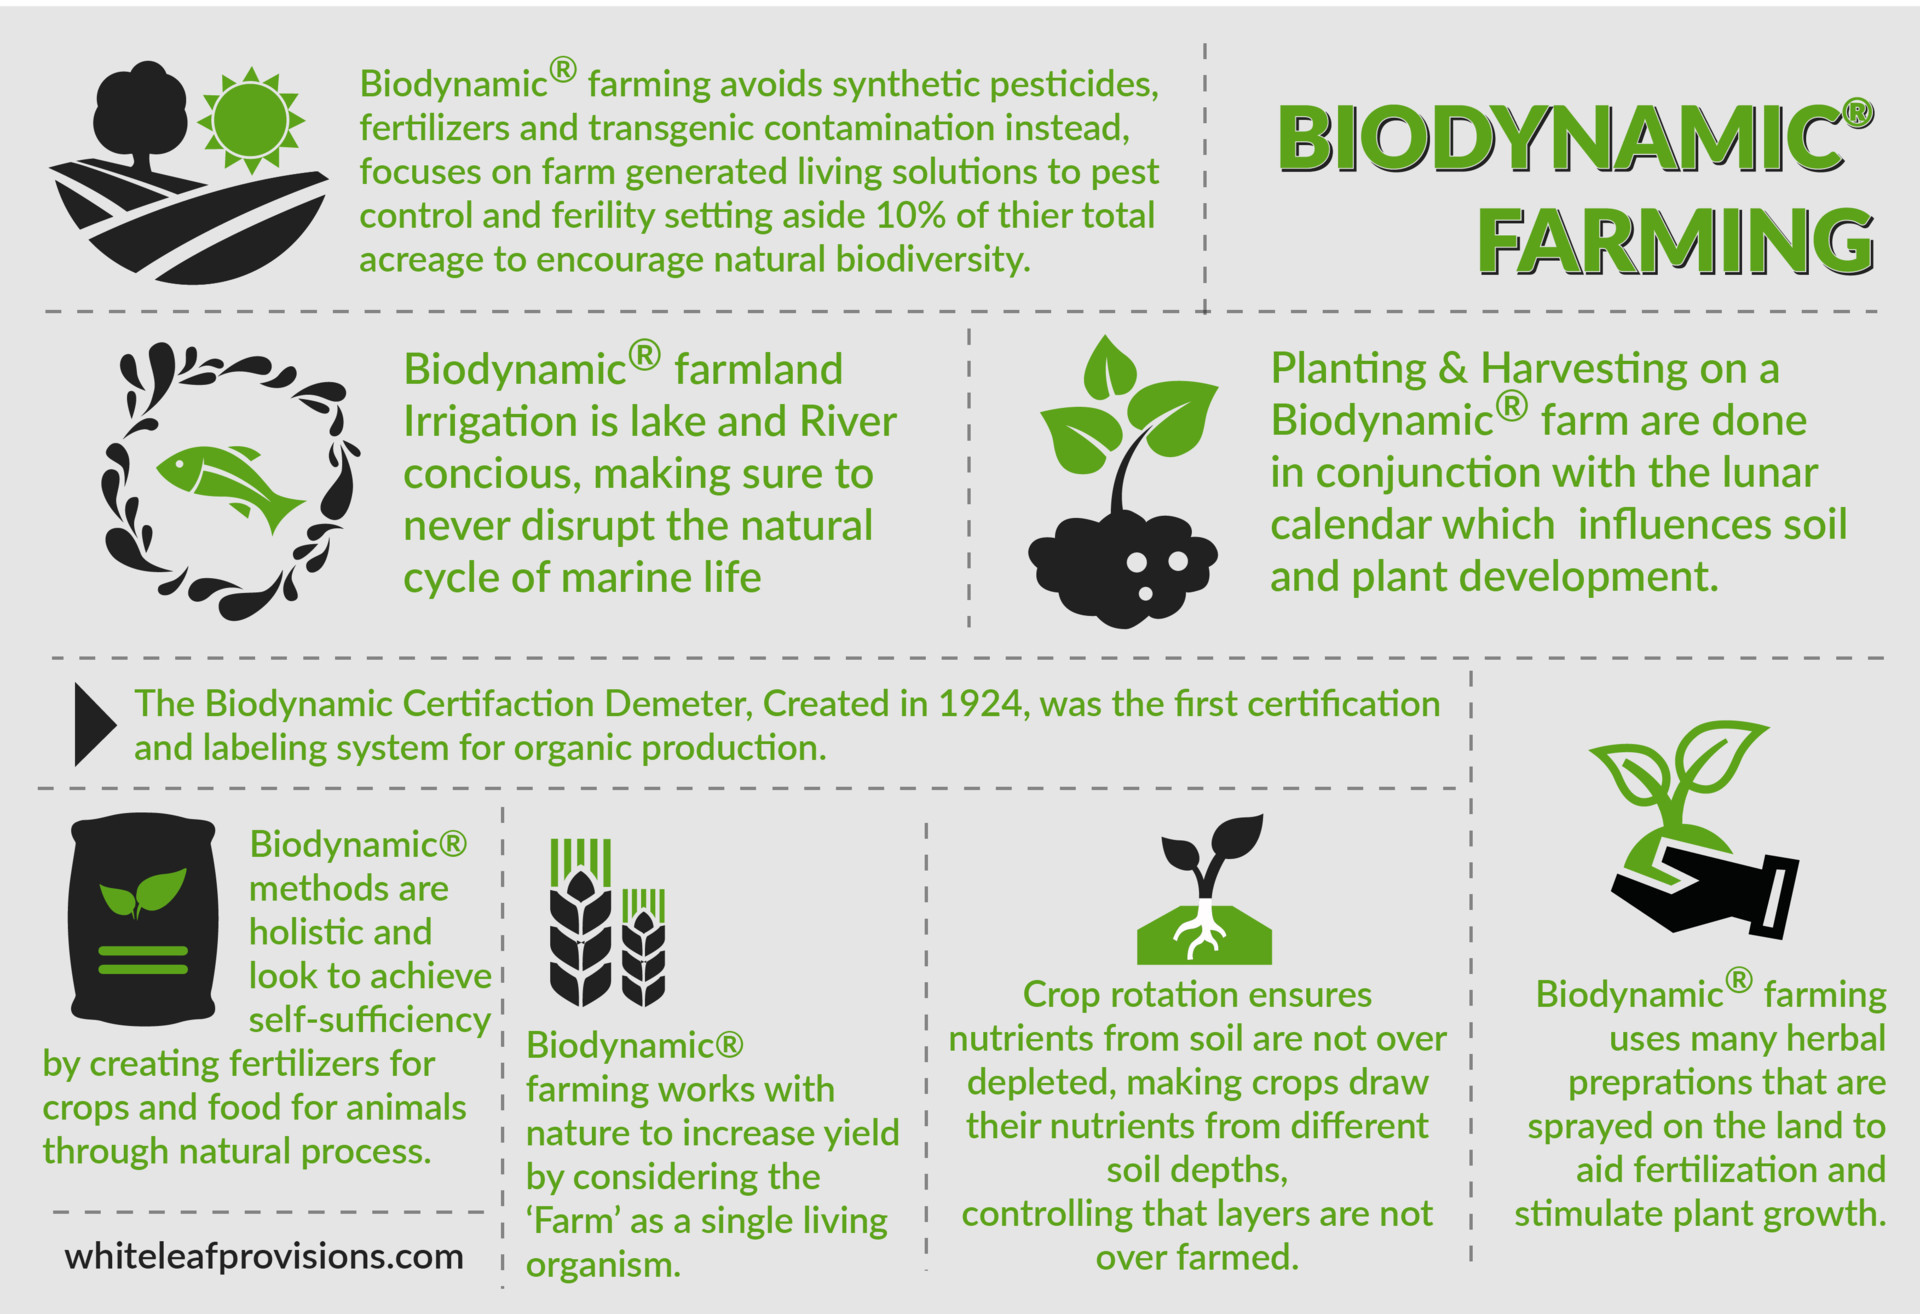 A guide to the principles of bio-dynamic farming by Faizan Javed